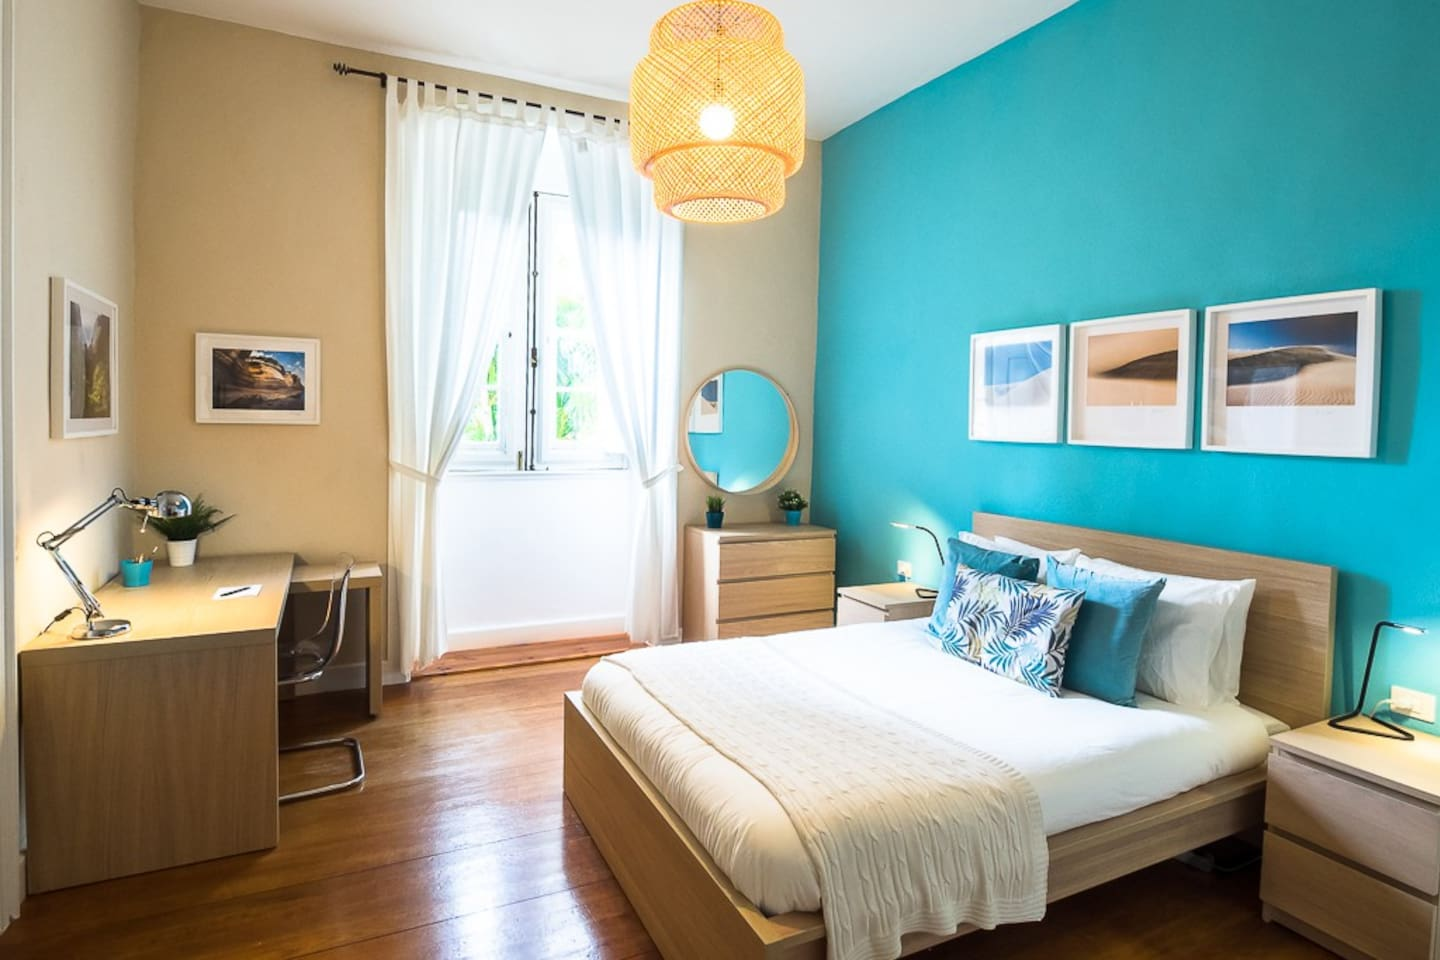 Your fantastic bedroom is very bright, clean and extraordinary spacious!